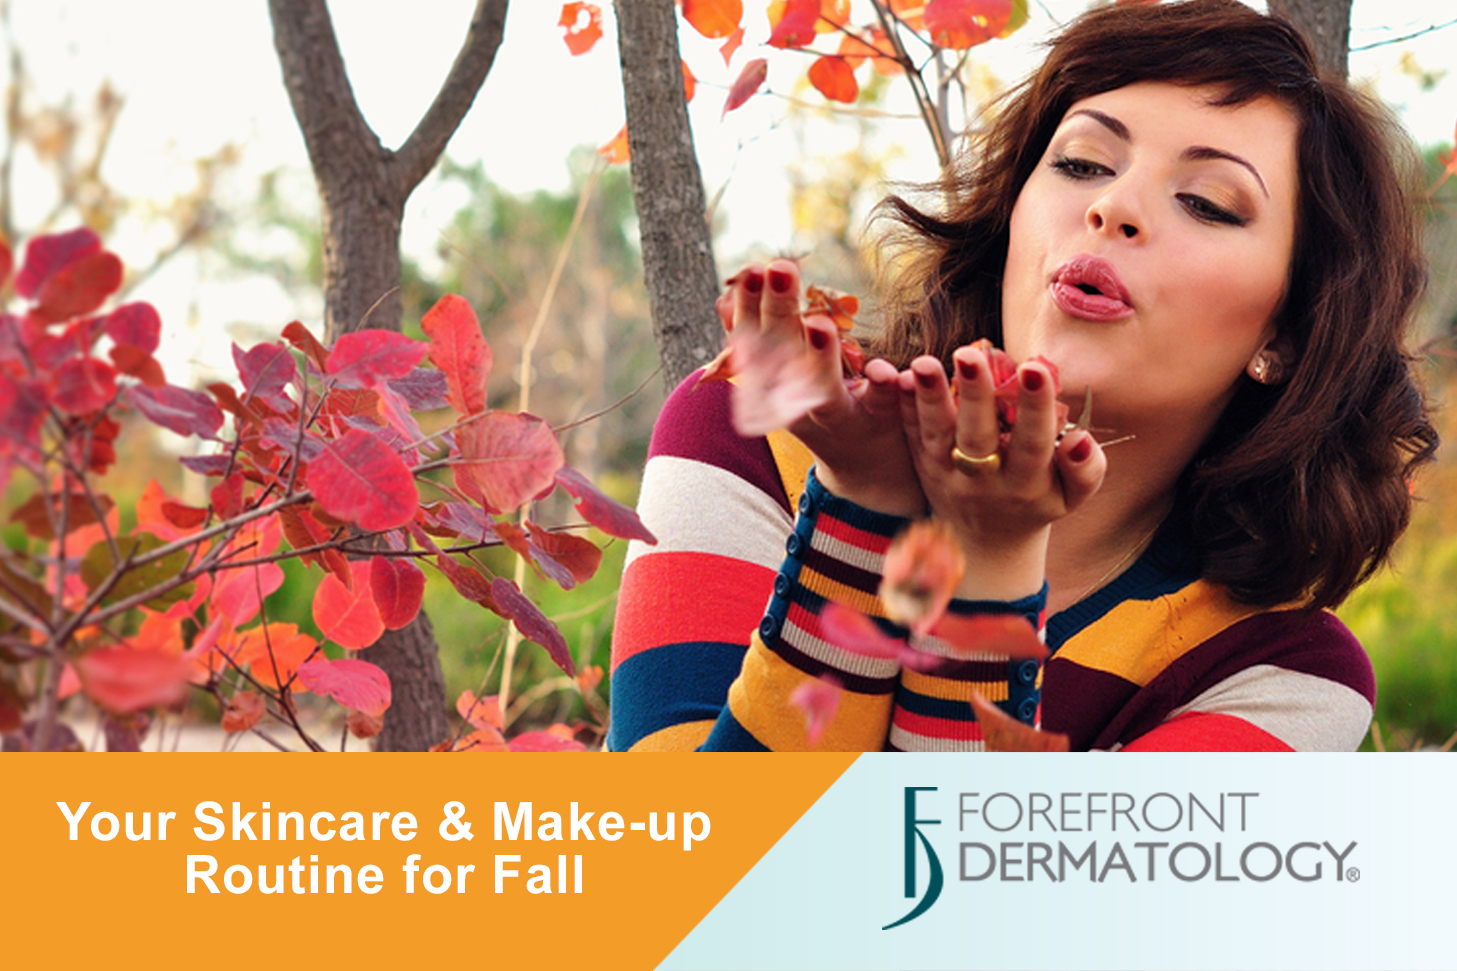 Adjusting Your Skincare and Make-Up Routine for Fall